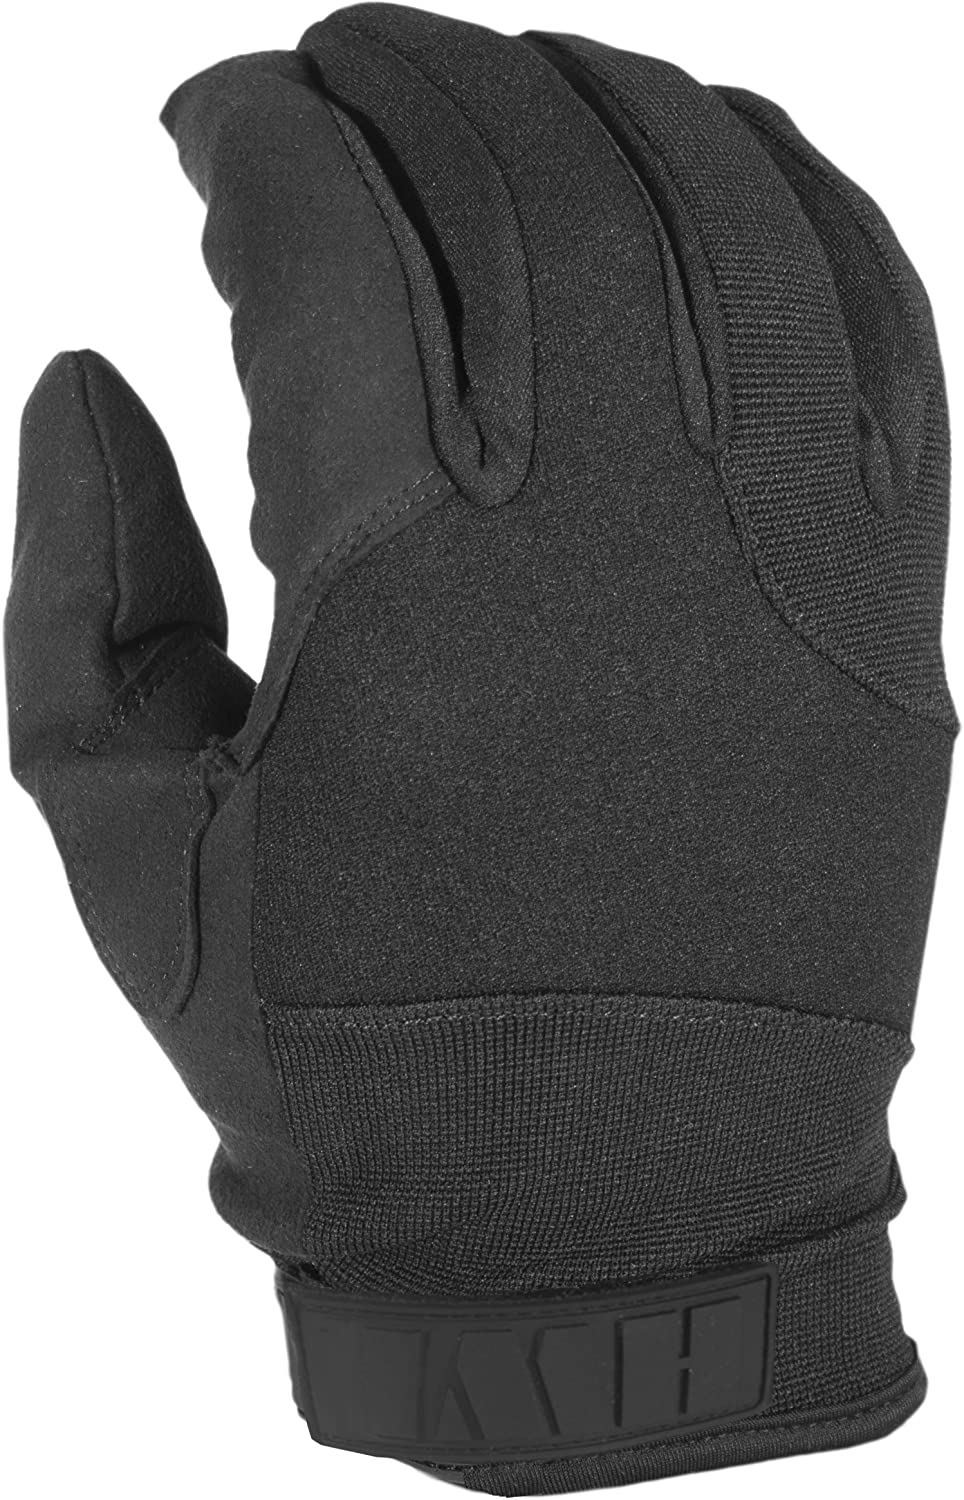 ACK, LLC HWI Gear Synthetic Liner Leather Duty Glove, Small, Black